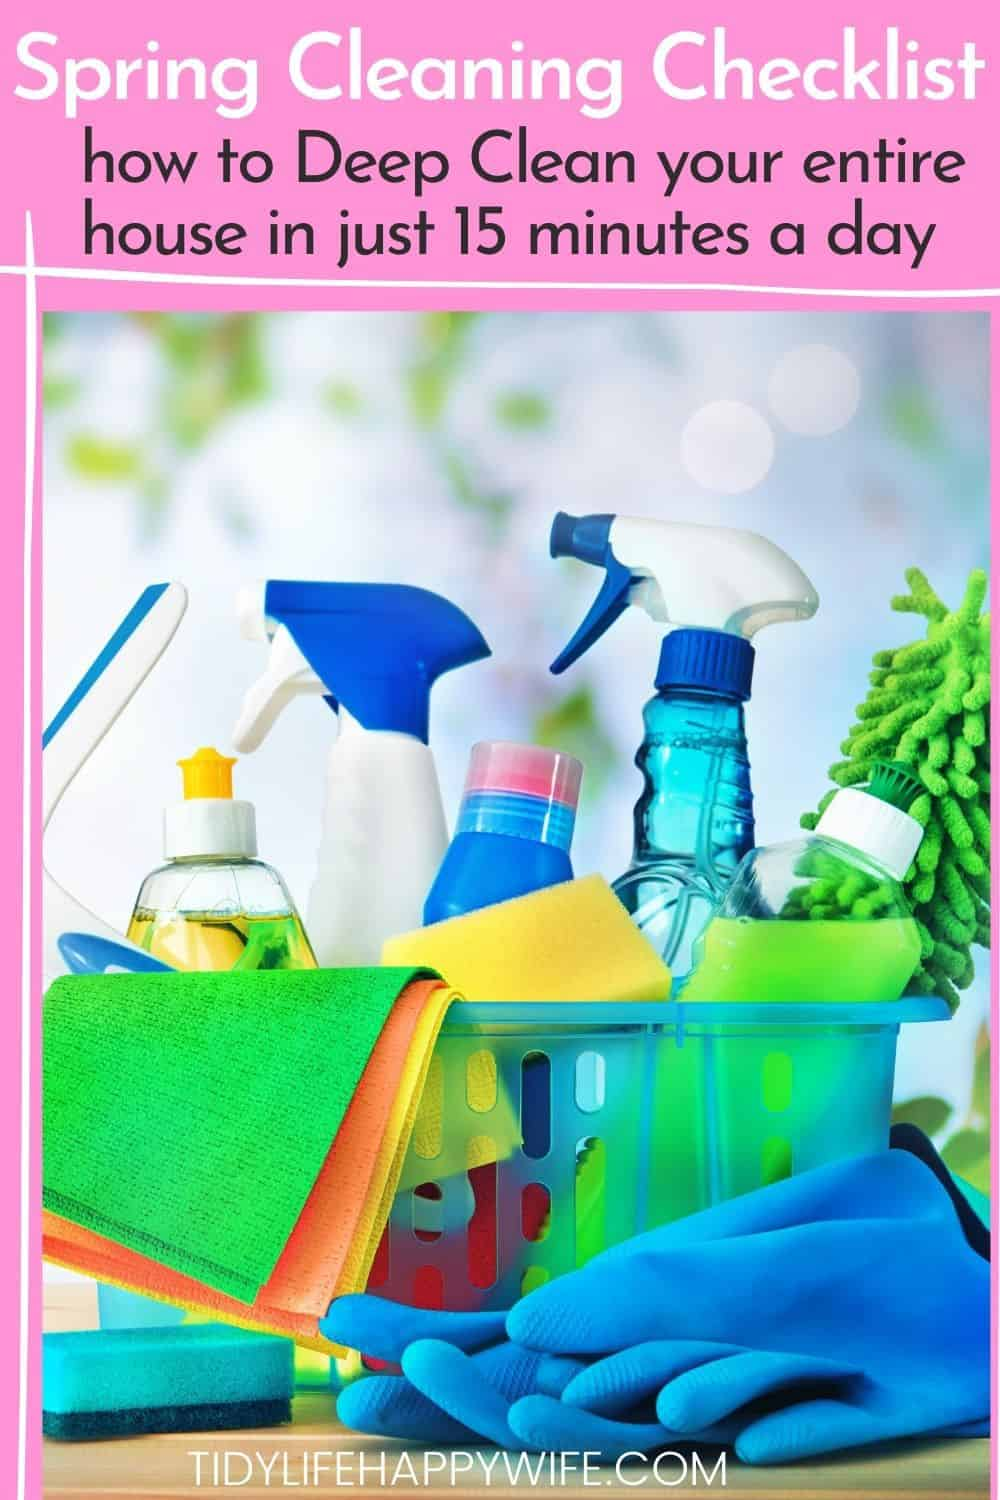 Intimidated by all of the deep cleaning you need to do to spring clean your house? Here's an easy spring cleaning checklist to help you get it all done. Tips for what to deep clean in each room of your home, which products to use, and tricks for following an organized schedule with a printable checklist to ensure you've cleaned everything in the bedroom, bathroom, and kitchen. Ideas and hacks for how to crush your spring cleaning schedule. | deep cleaning | free checklist | printable checklist via @Tidylifehappywife